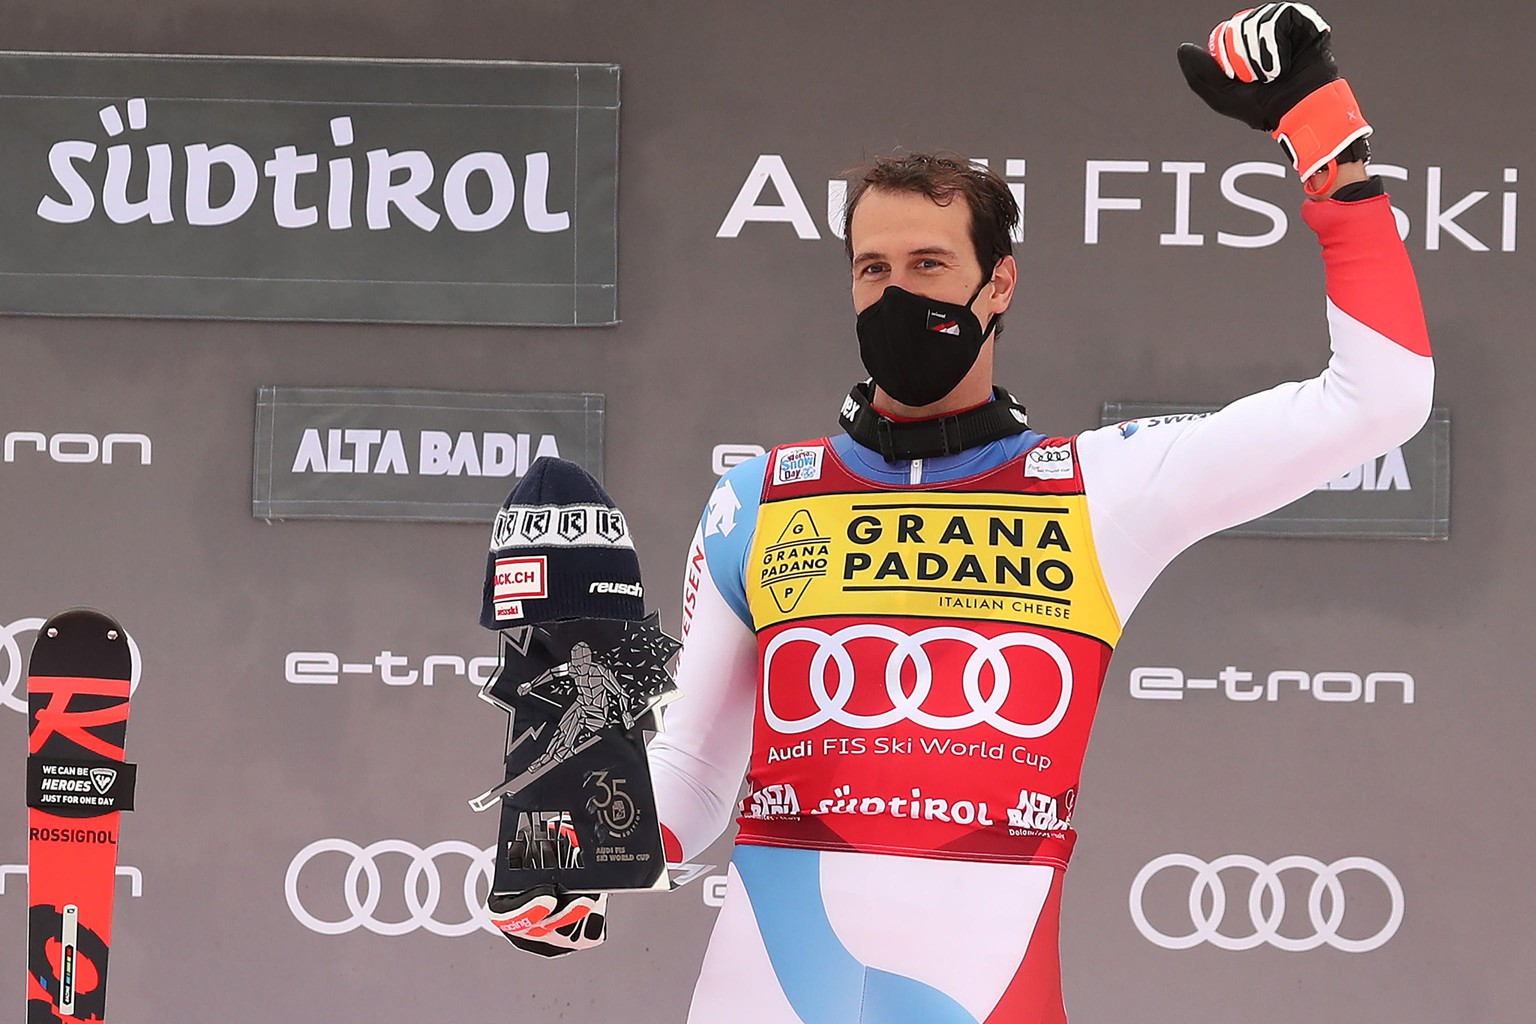 epa08897810 Winner Ramon Zenhaeusern of Switzerland celebrates on the podium for the Men's Slalom race at the FIS Alpine Skiing World Cup in Alta Badia, Italy, 21 December 2020.  EPA/ANDREA SOLERO